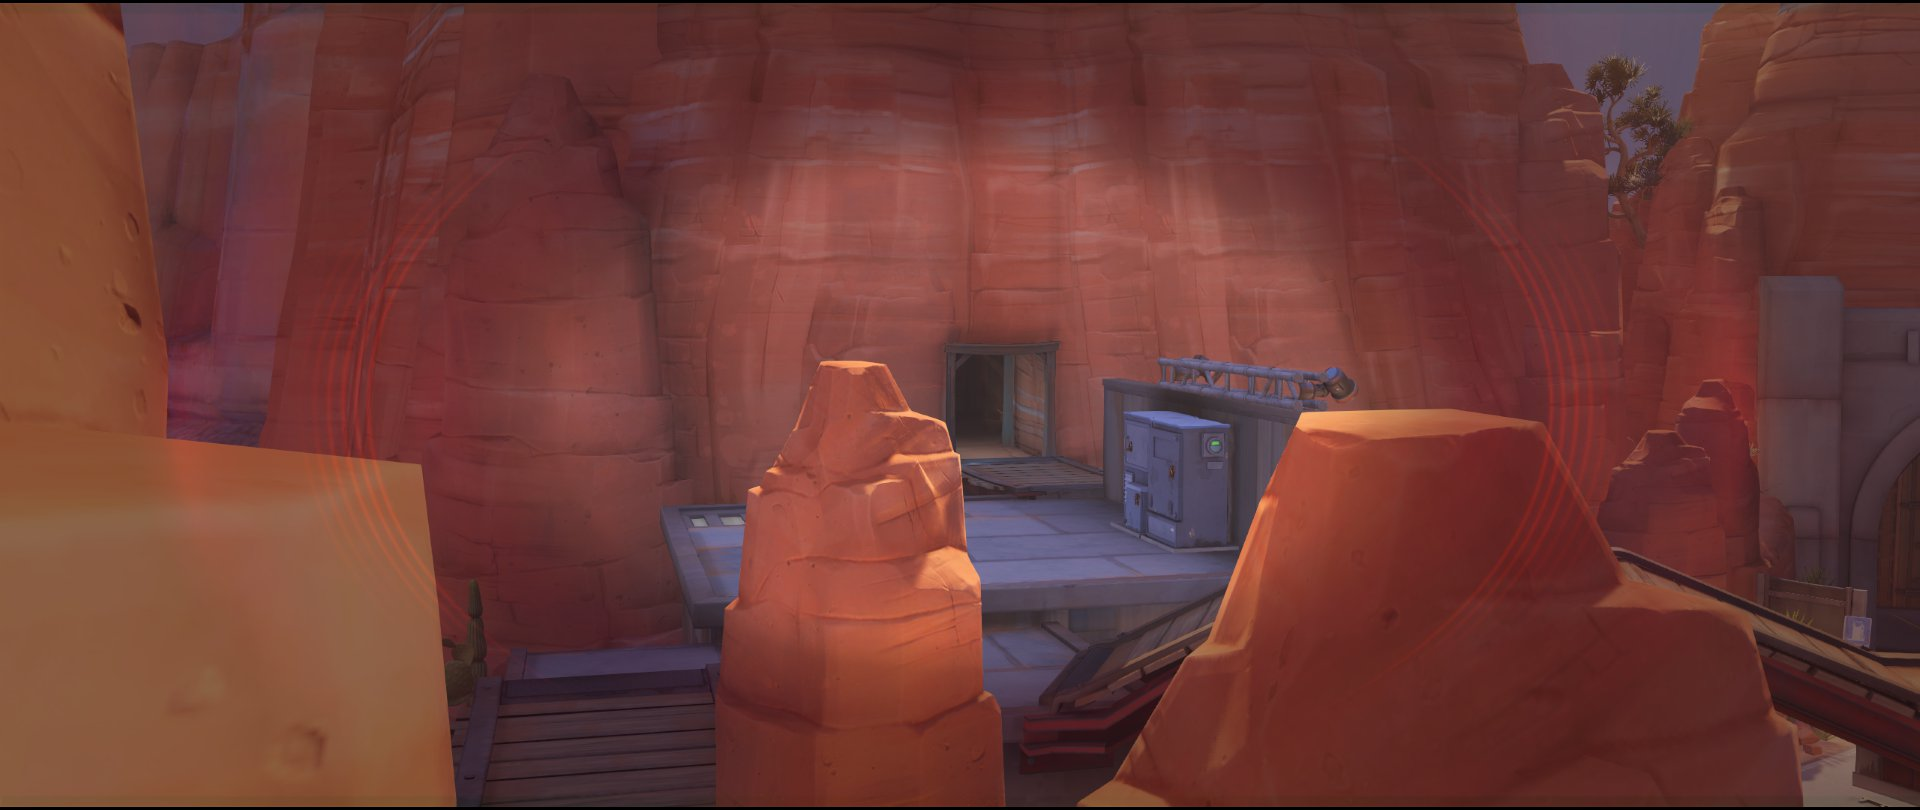 Small roof on catwalk to side spawn entrance defense sniping spot Widowmaker Route 66.jpg